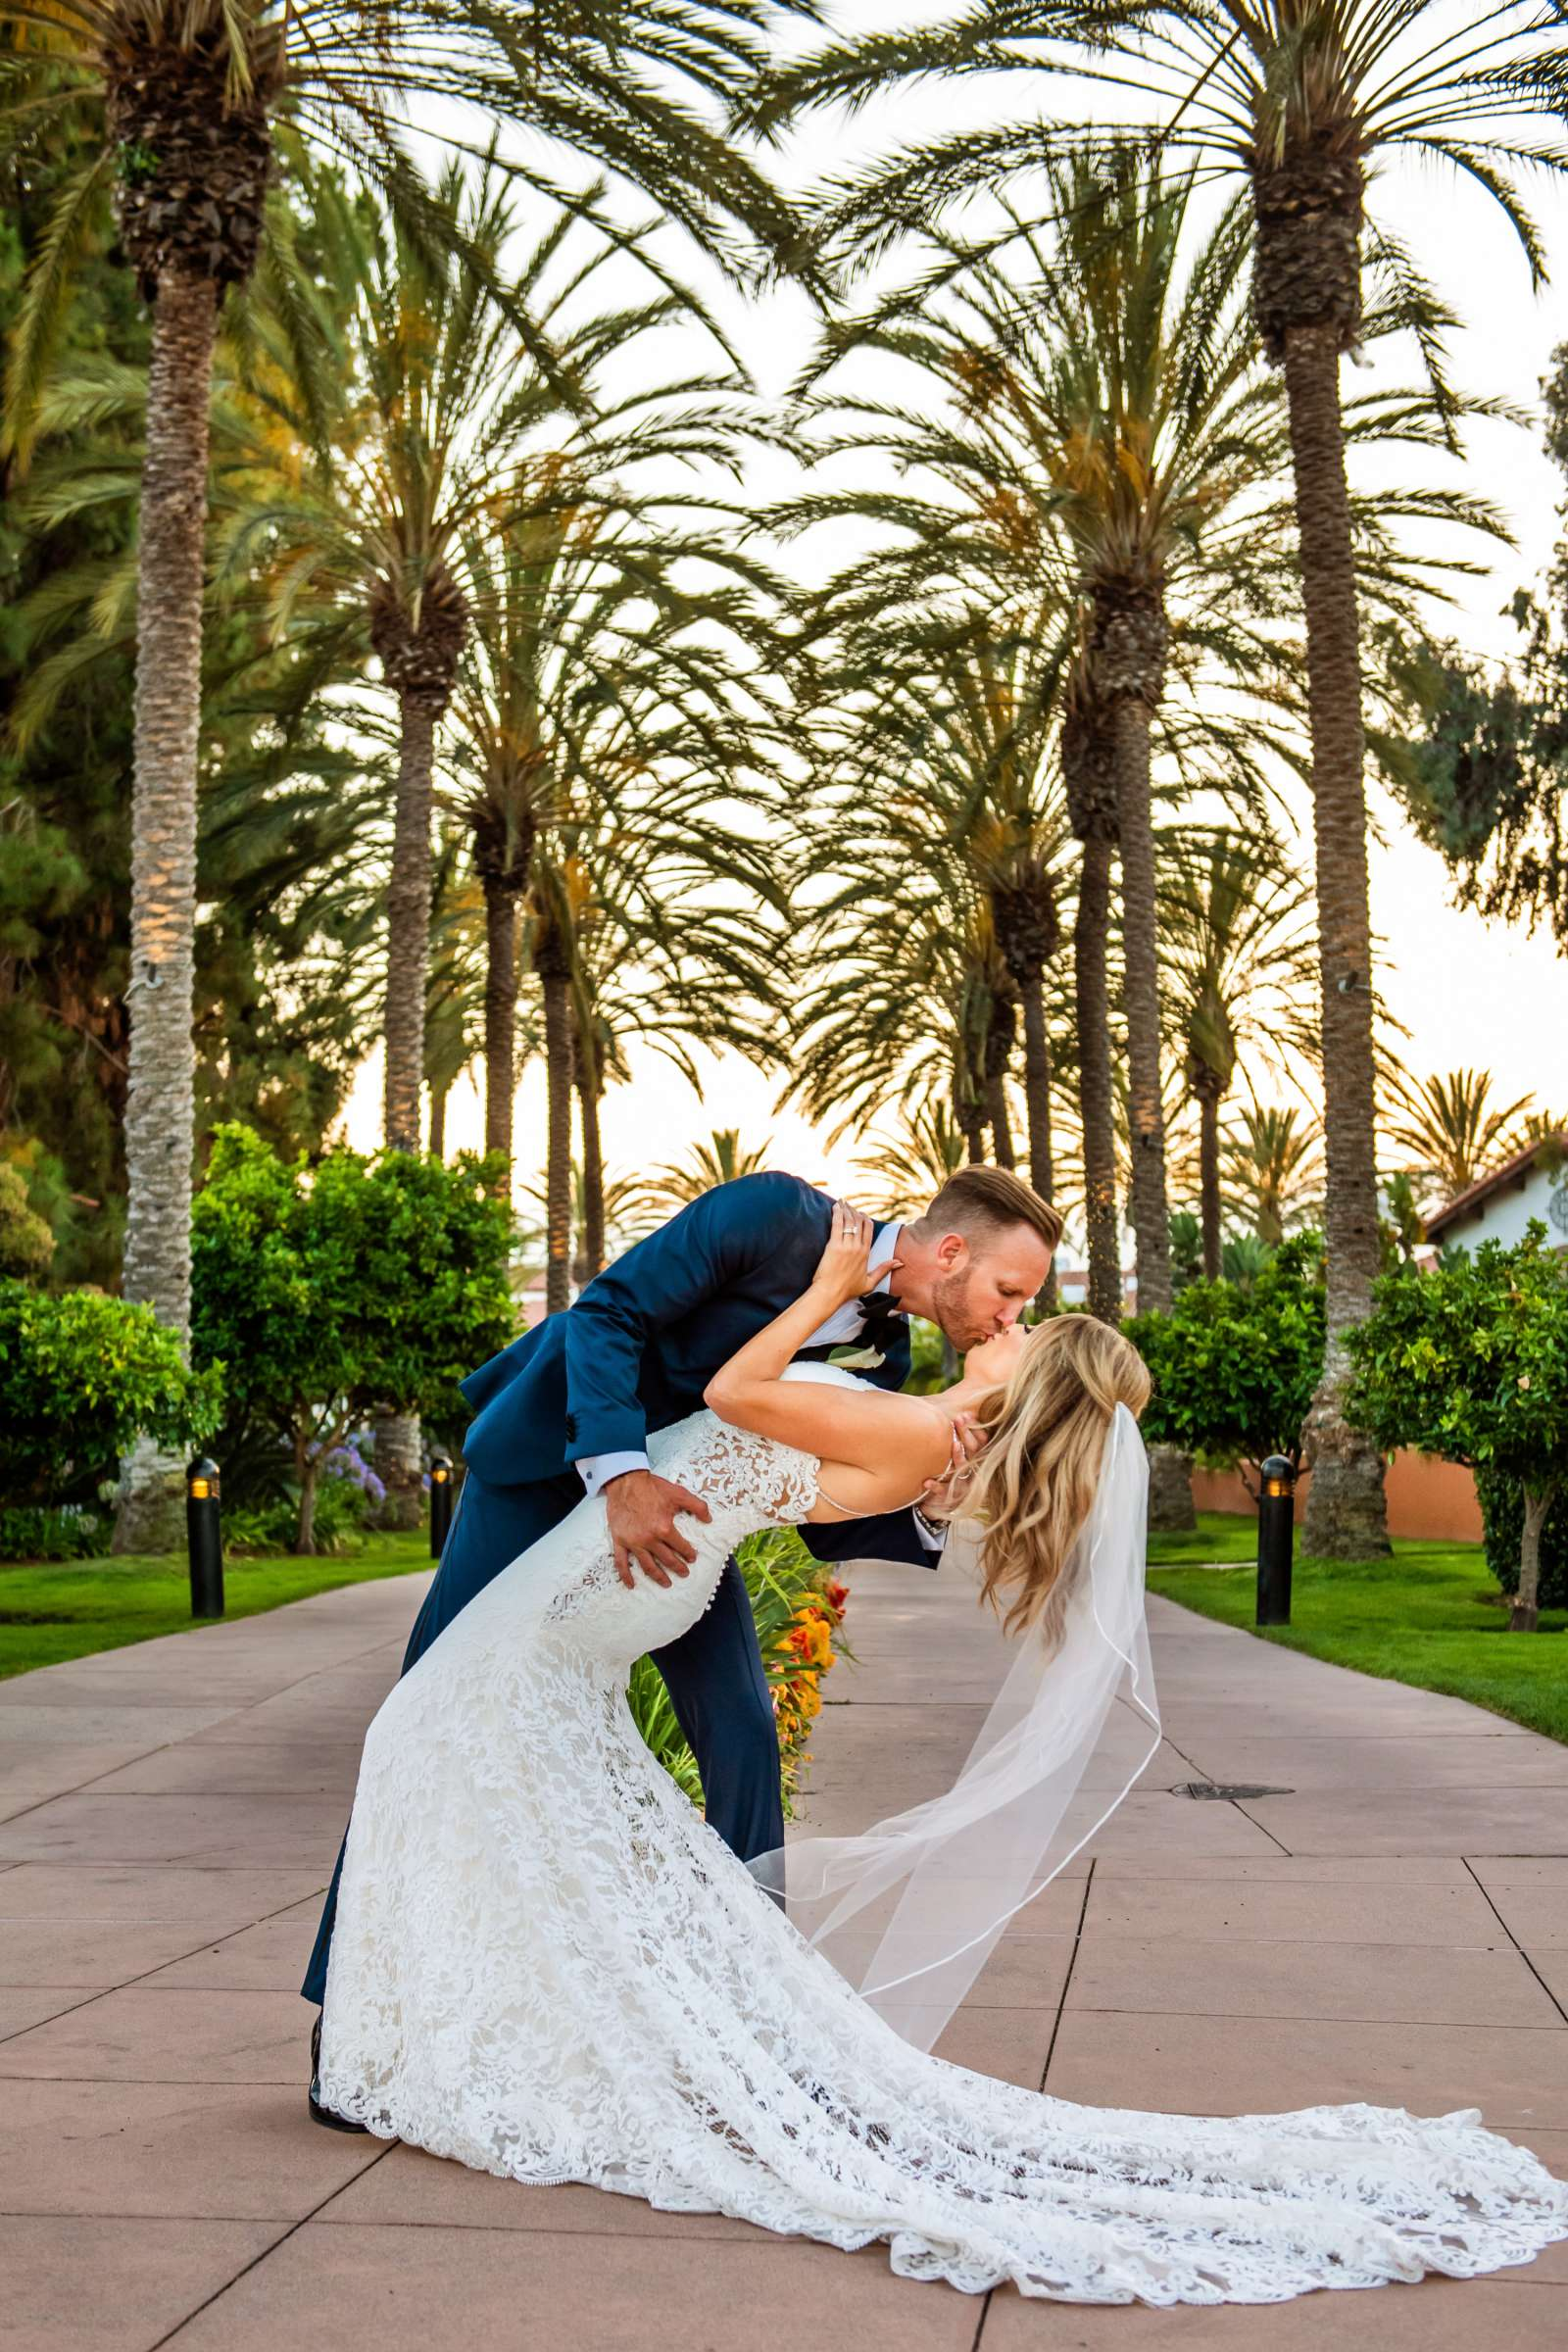 Omni La Costa Resort & Spa Wedding coordinated by SD Weddings by Gina, Randee and Craig Wedding Photo #91 by True Photography